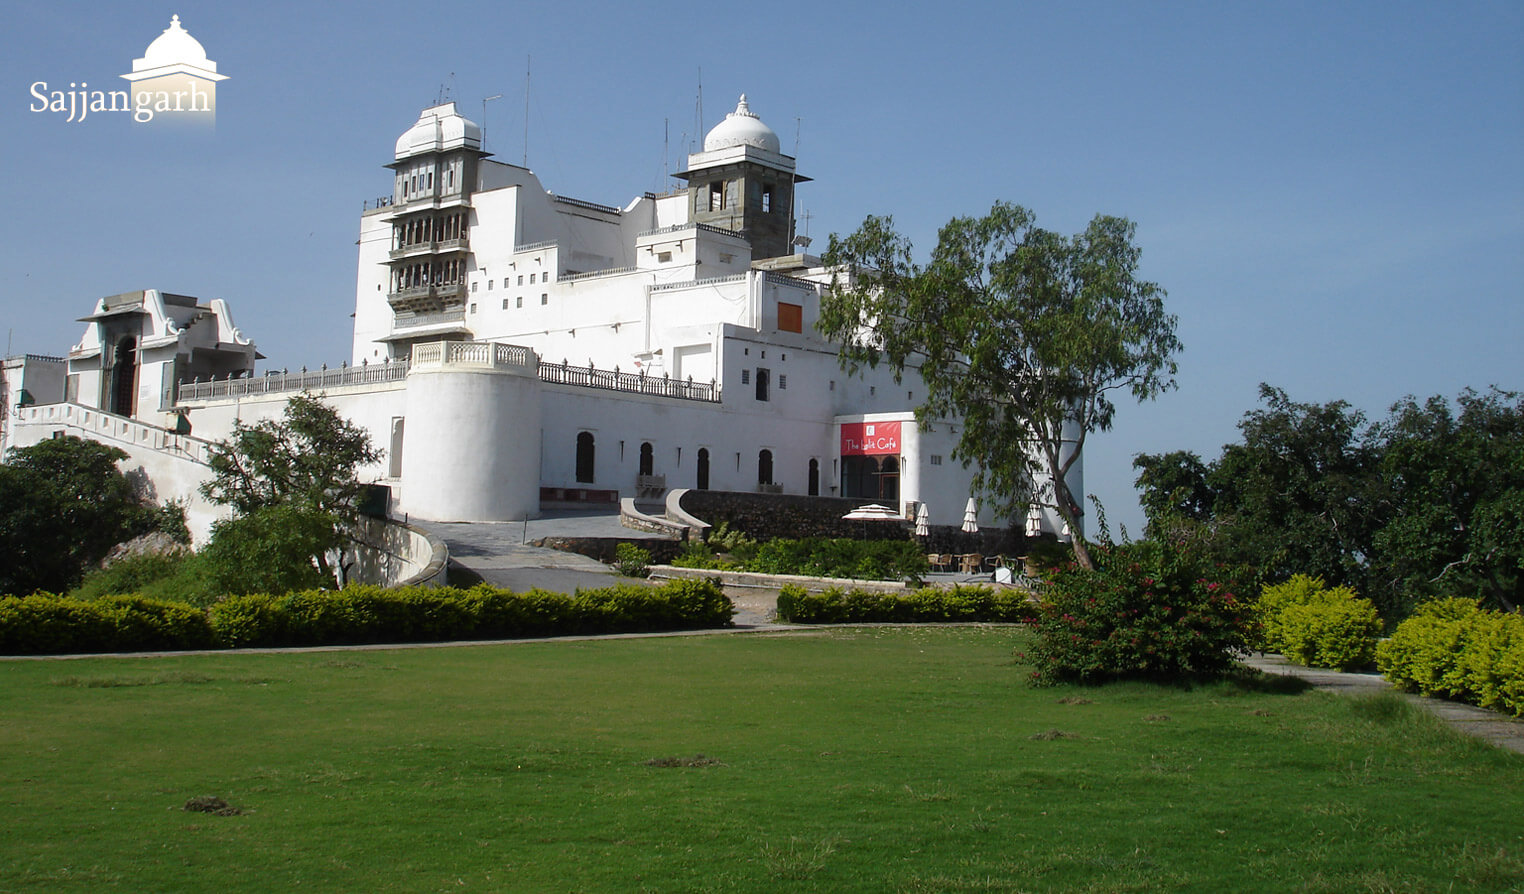 sajjangarh_monsoon_palace